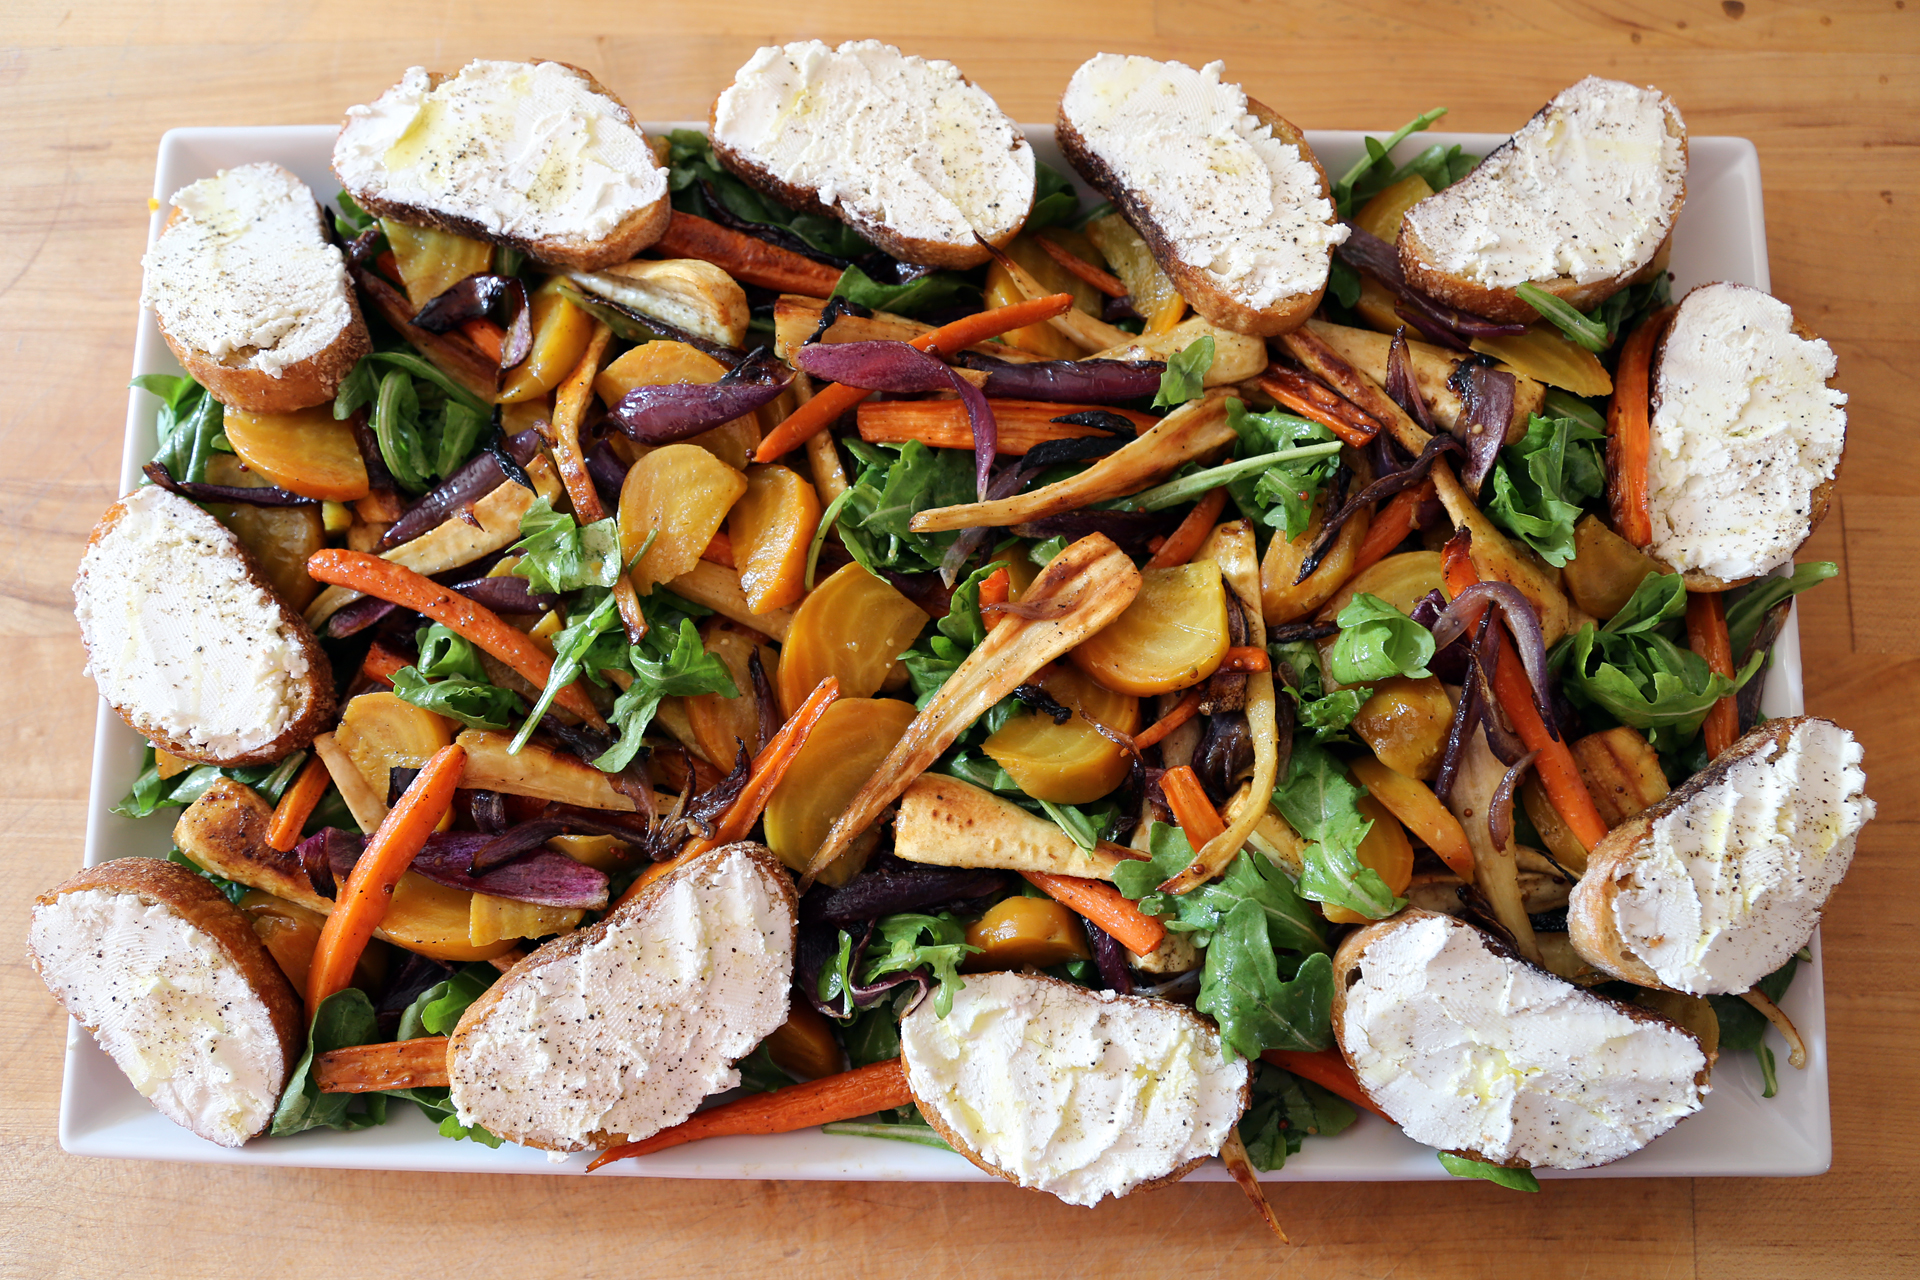 Arrange the crostini around the salad if using a platter.